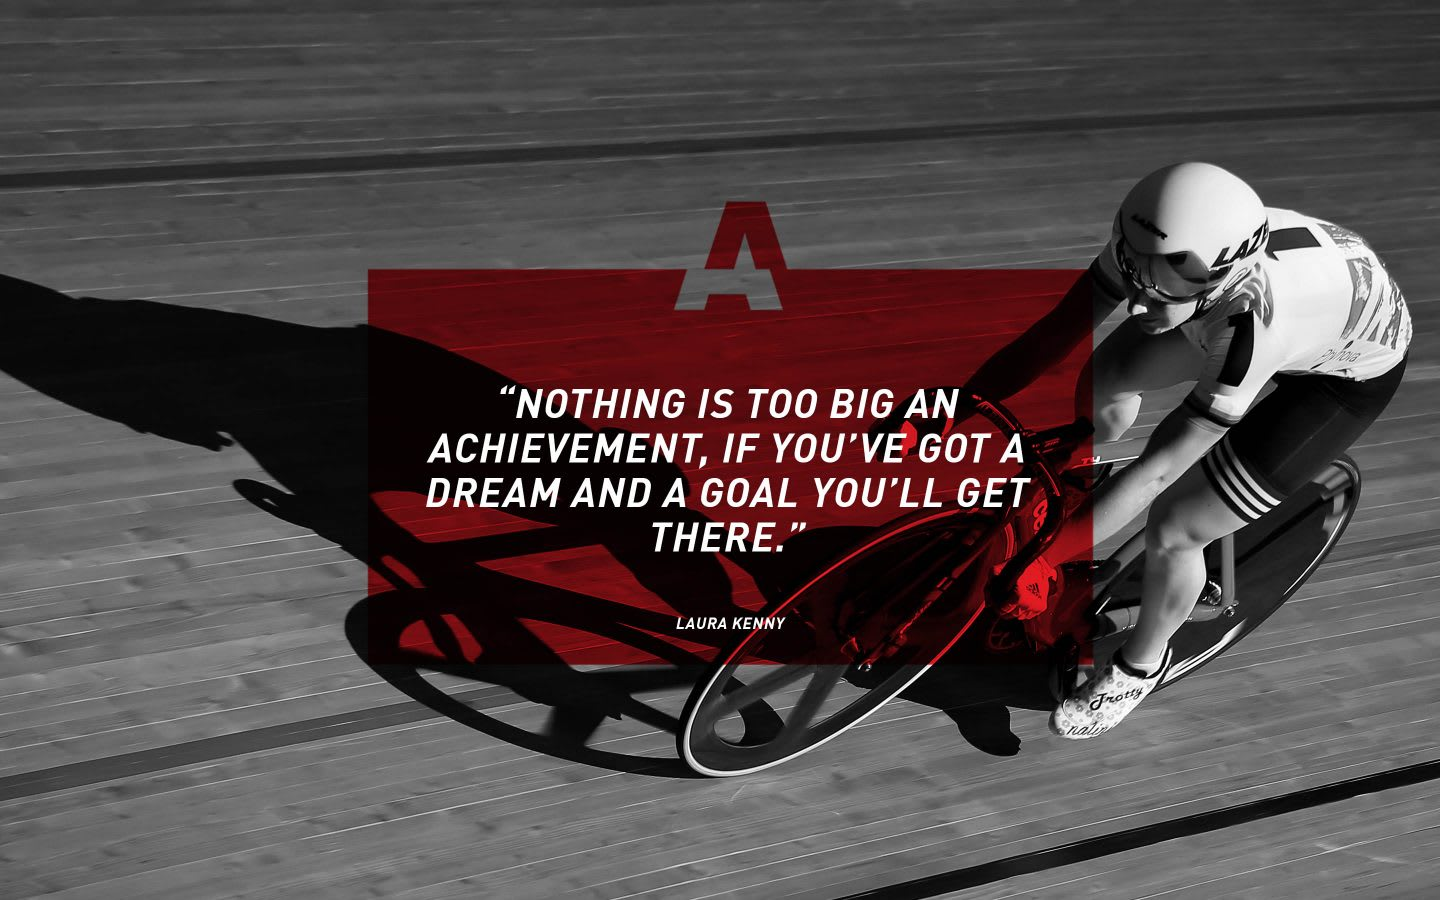 adidas track cyclist Laura Kenny quote, inspiration, motivation, GamePlan A, adidas, athlete